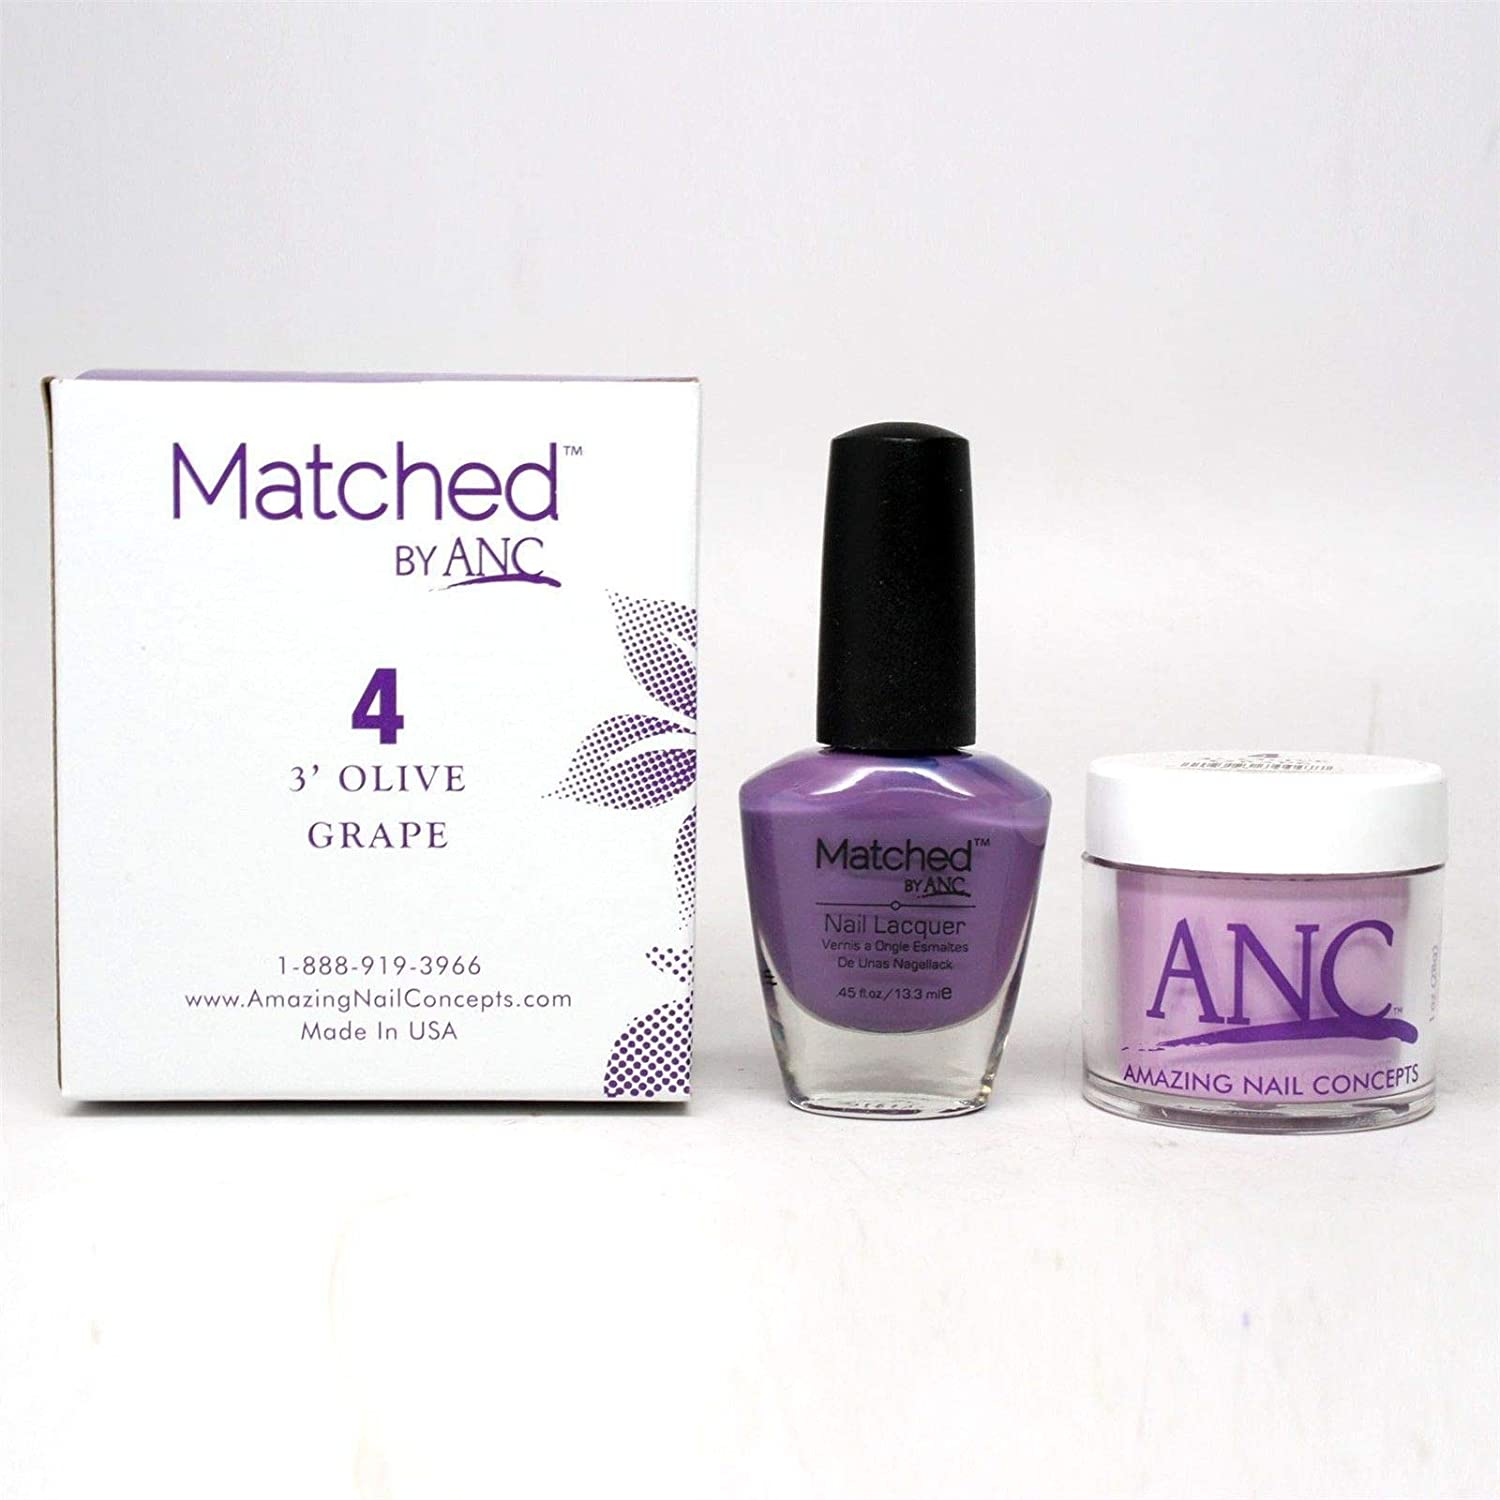 ANC Amazing Nail Concepts Matched kit # 4 3' Olive Grape